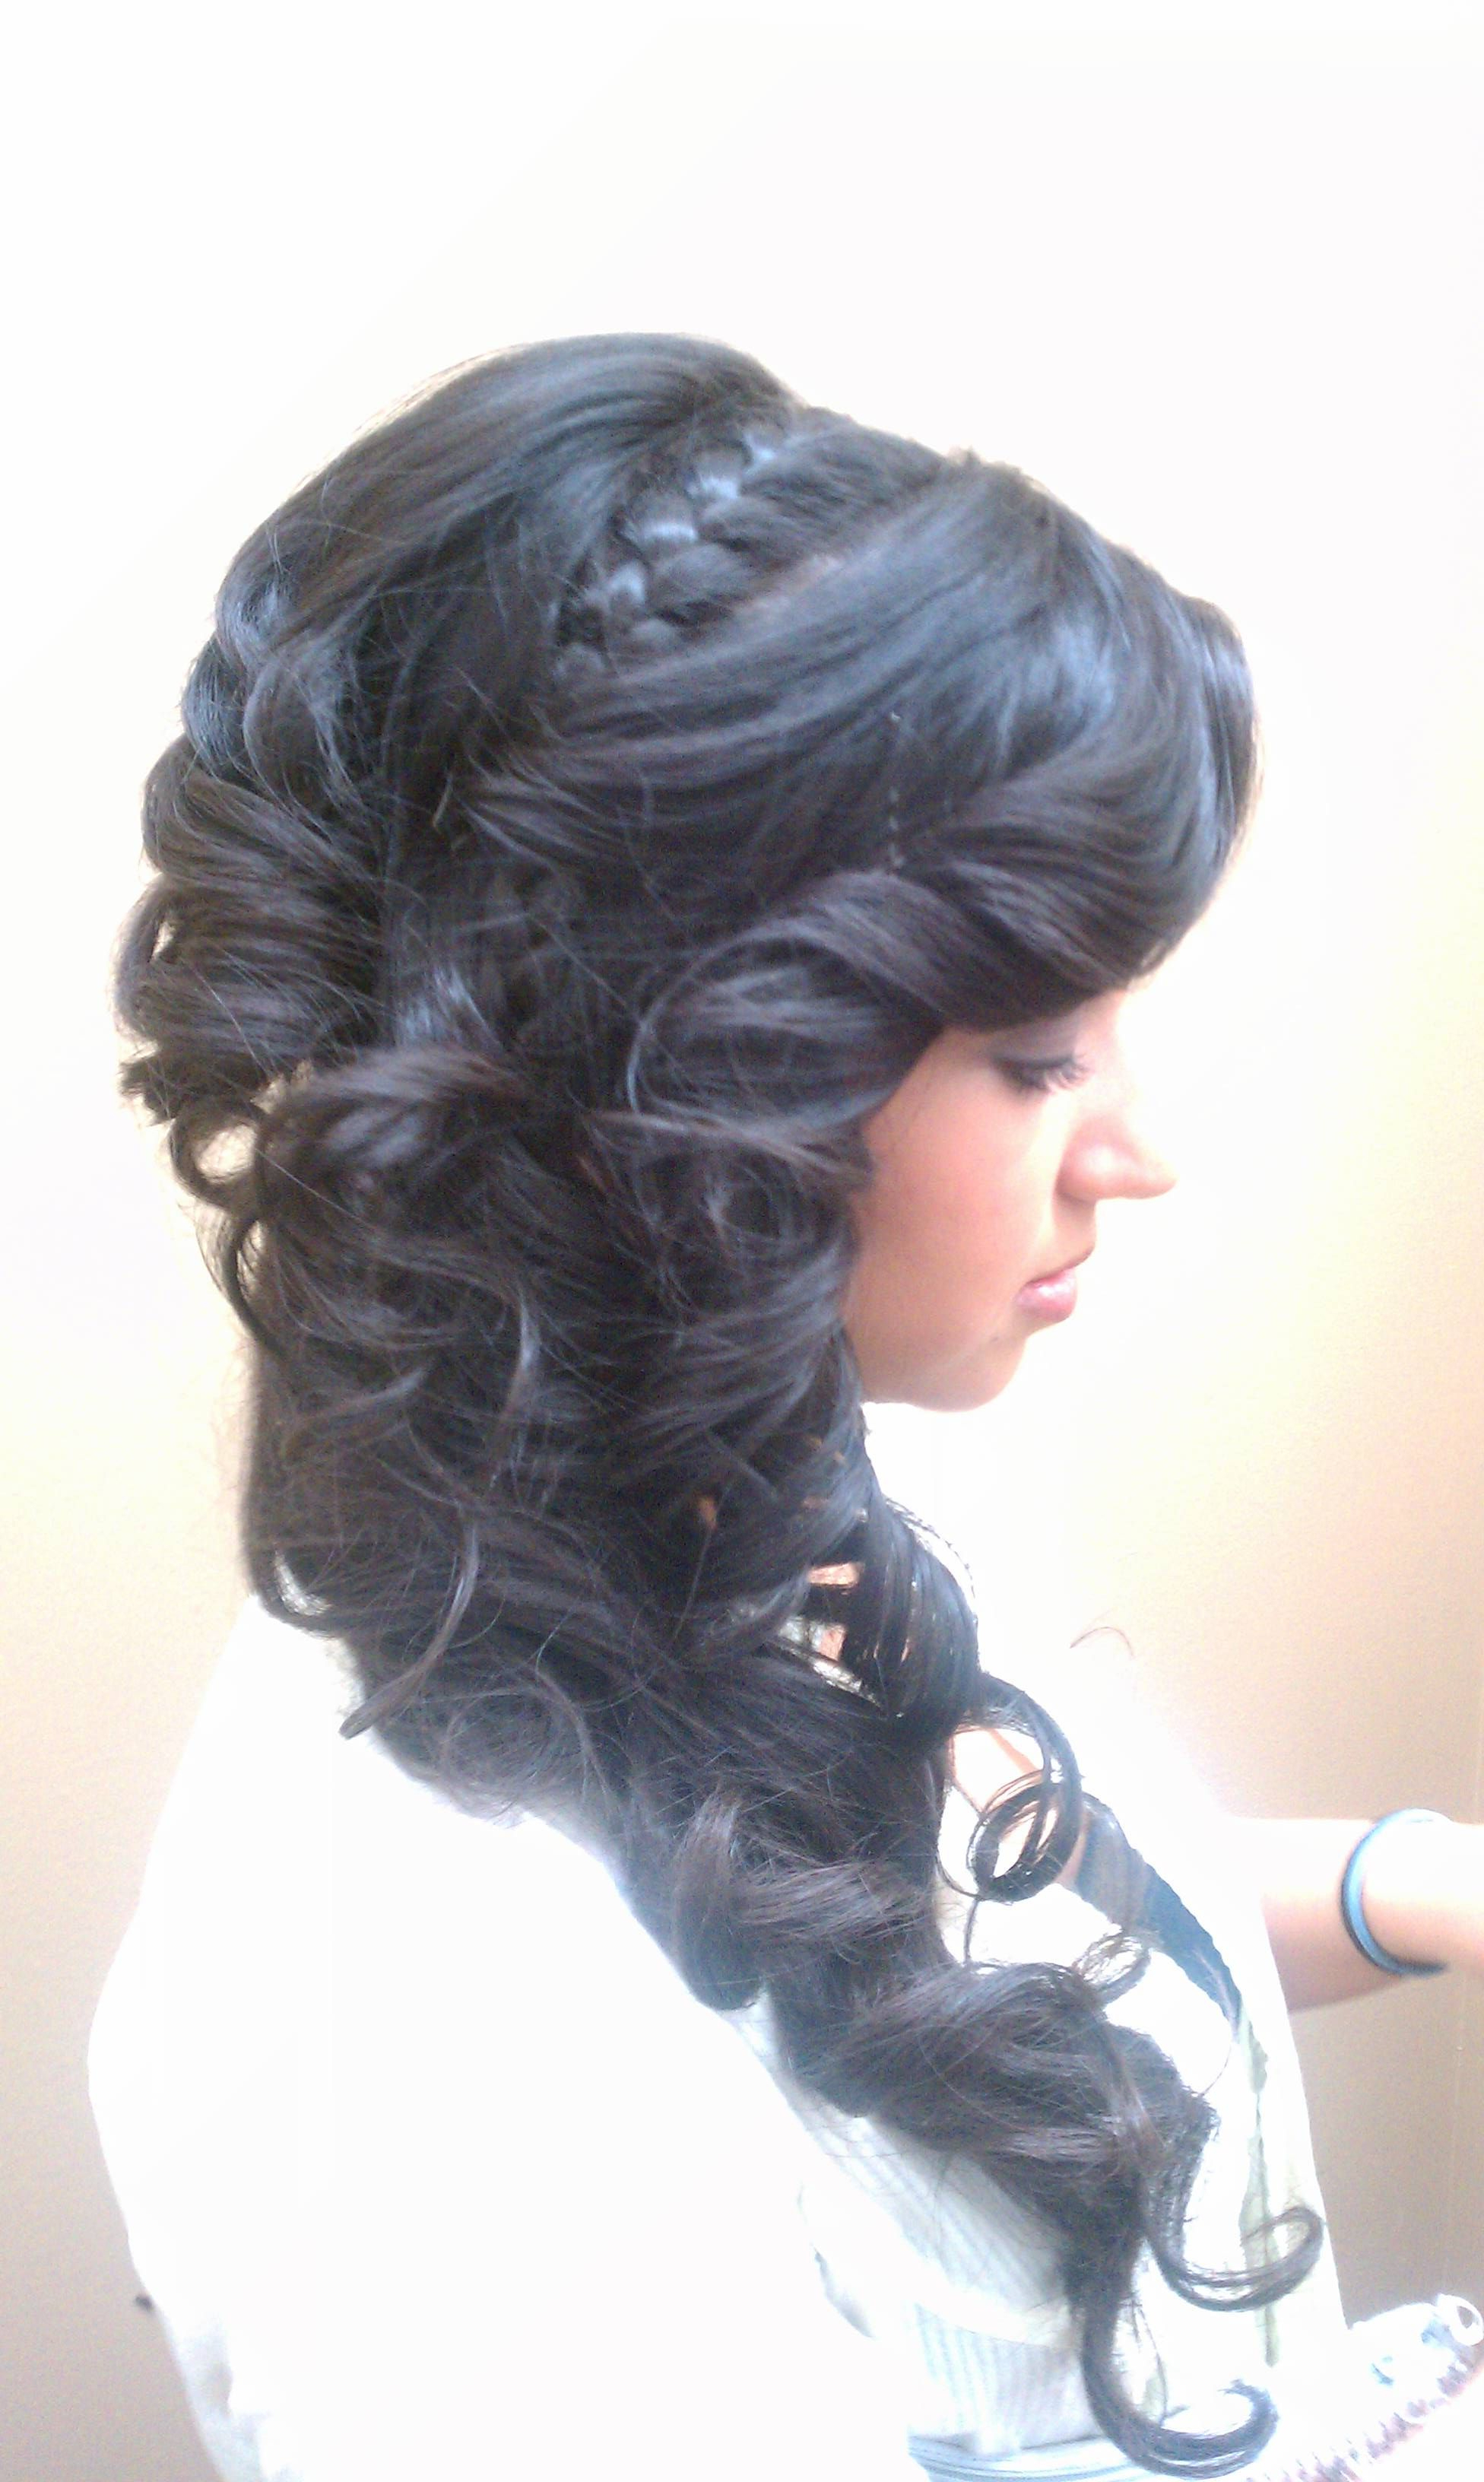 Side, Updo, Long Hair, Braid, Curls, Tight Curls, Upstyle, (View 14 of 20)